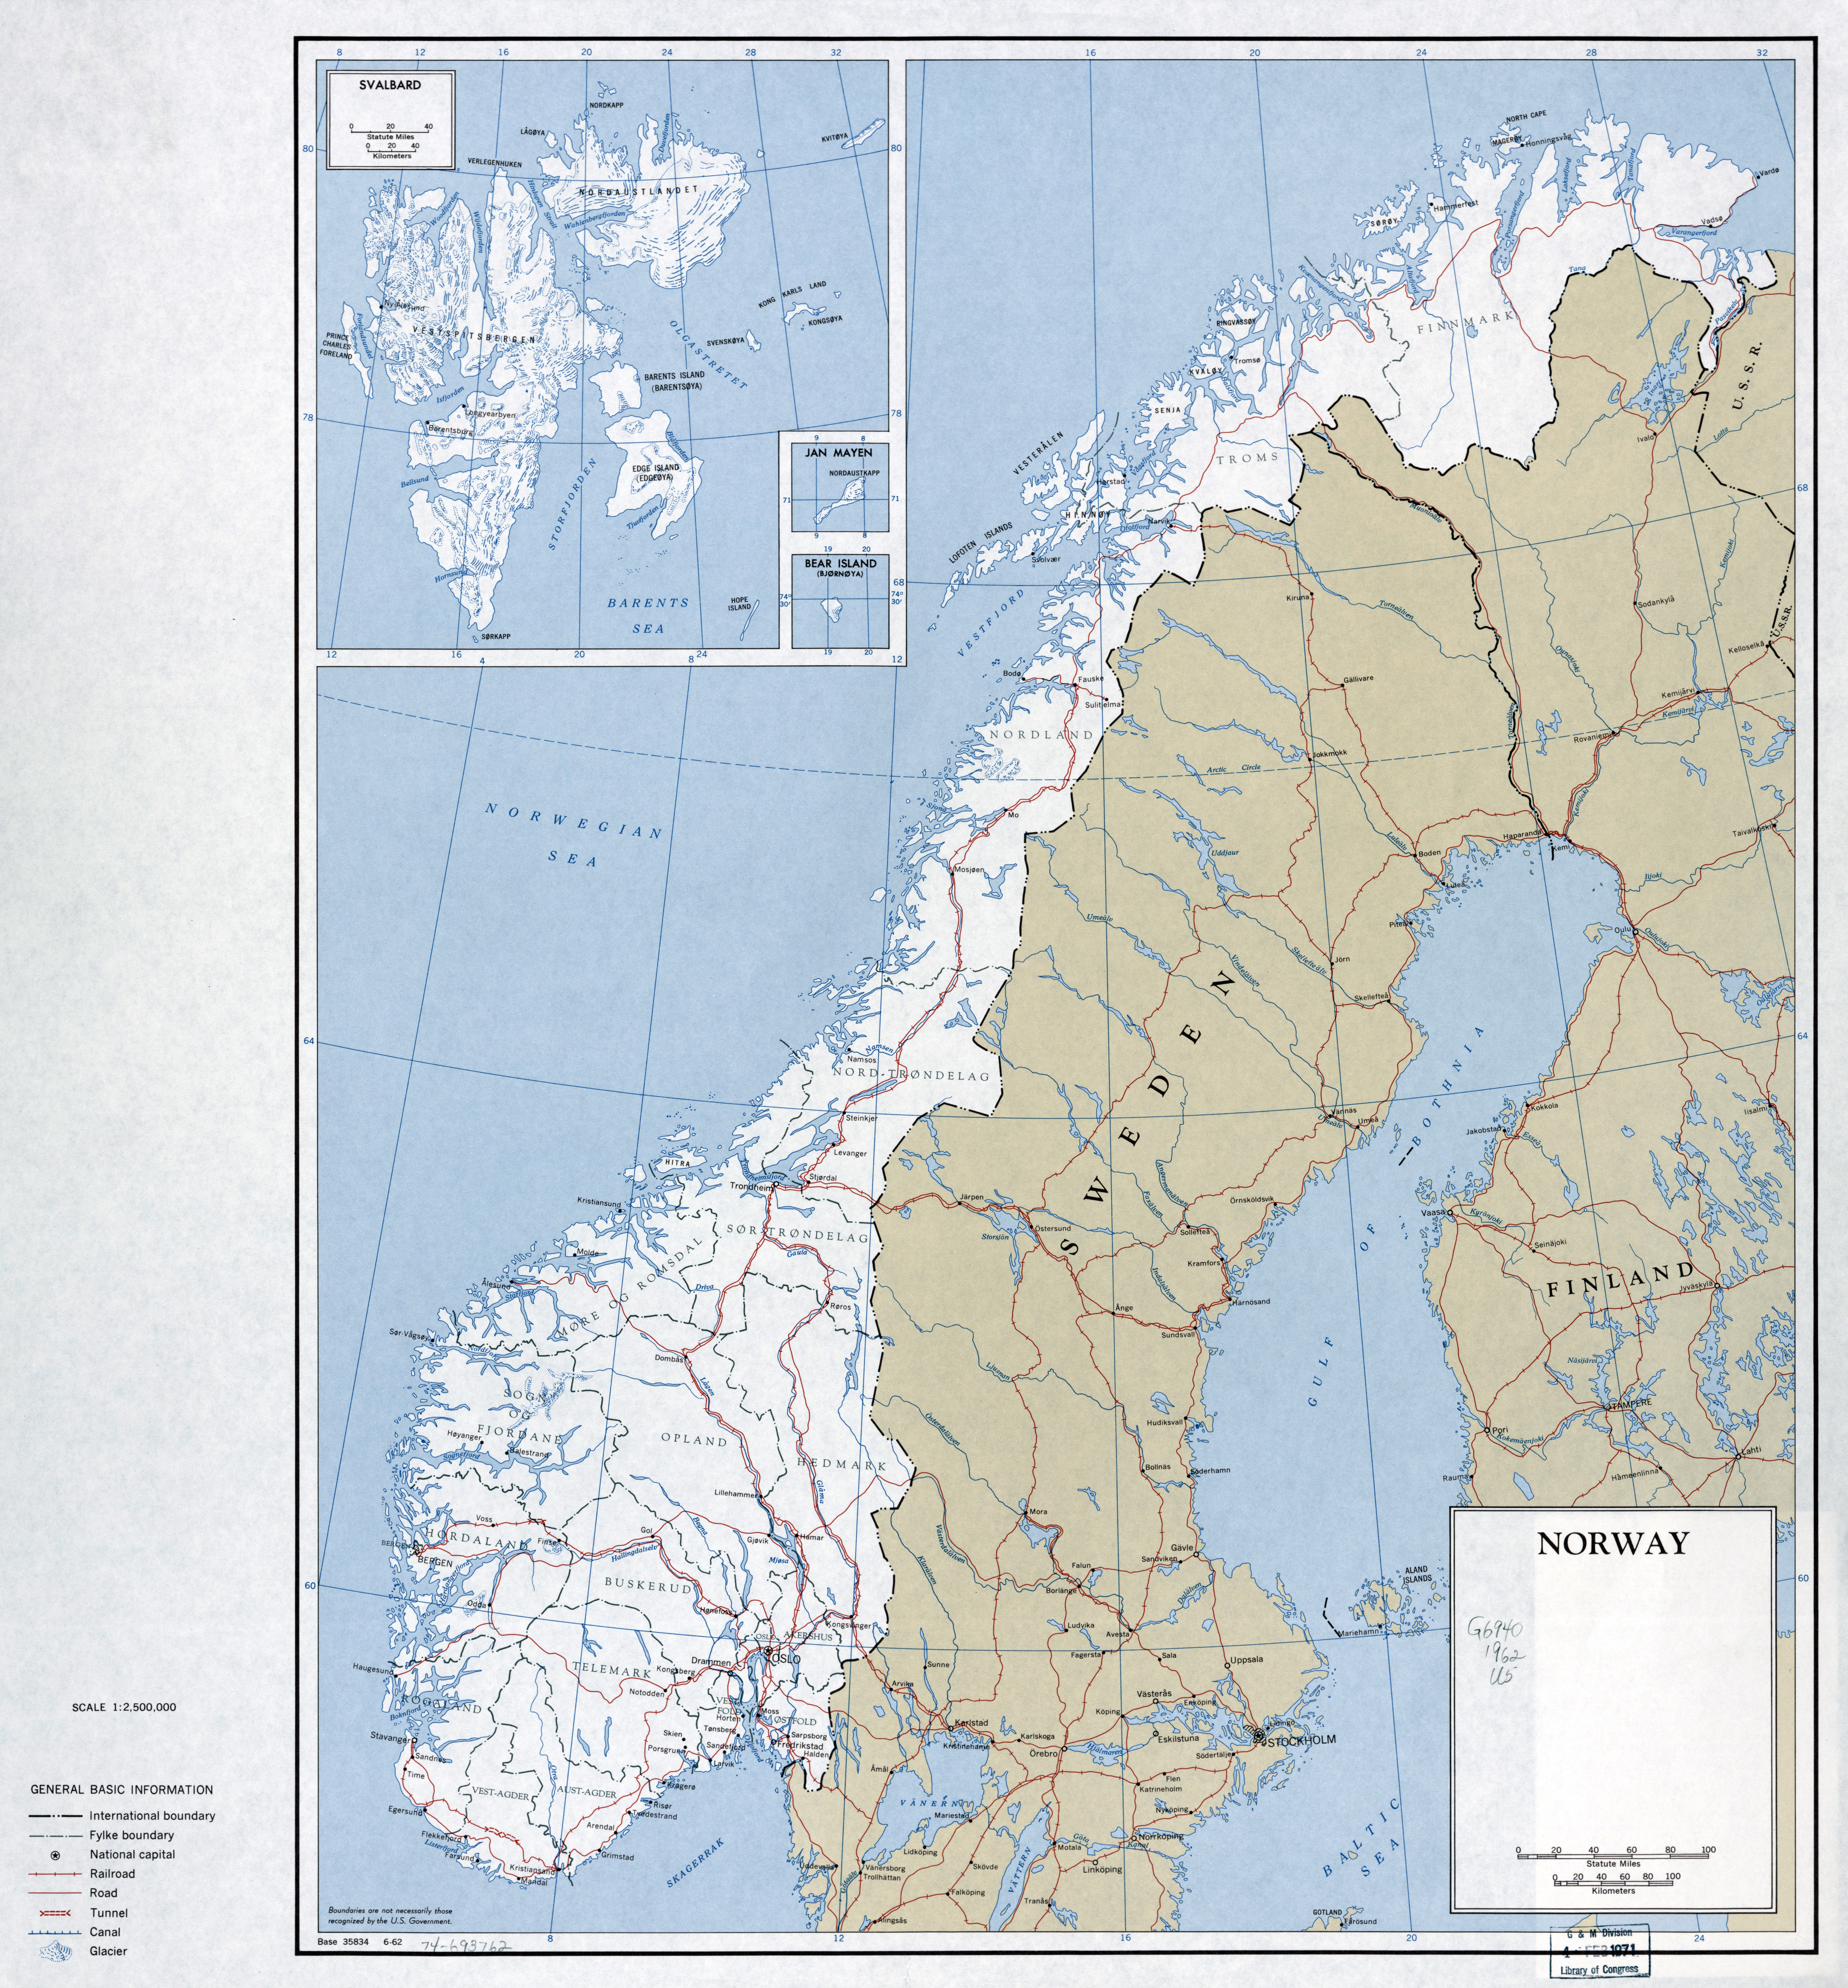 Large scale political and administrative map of Norway and